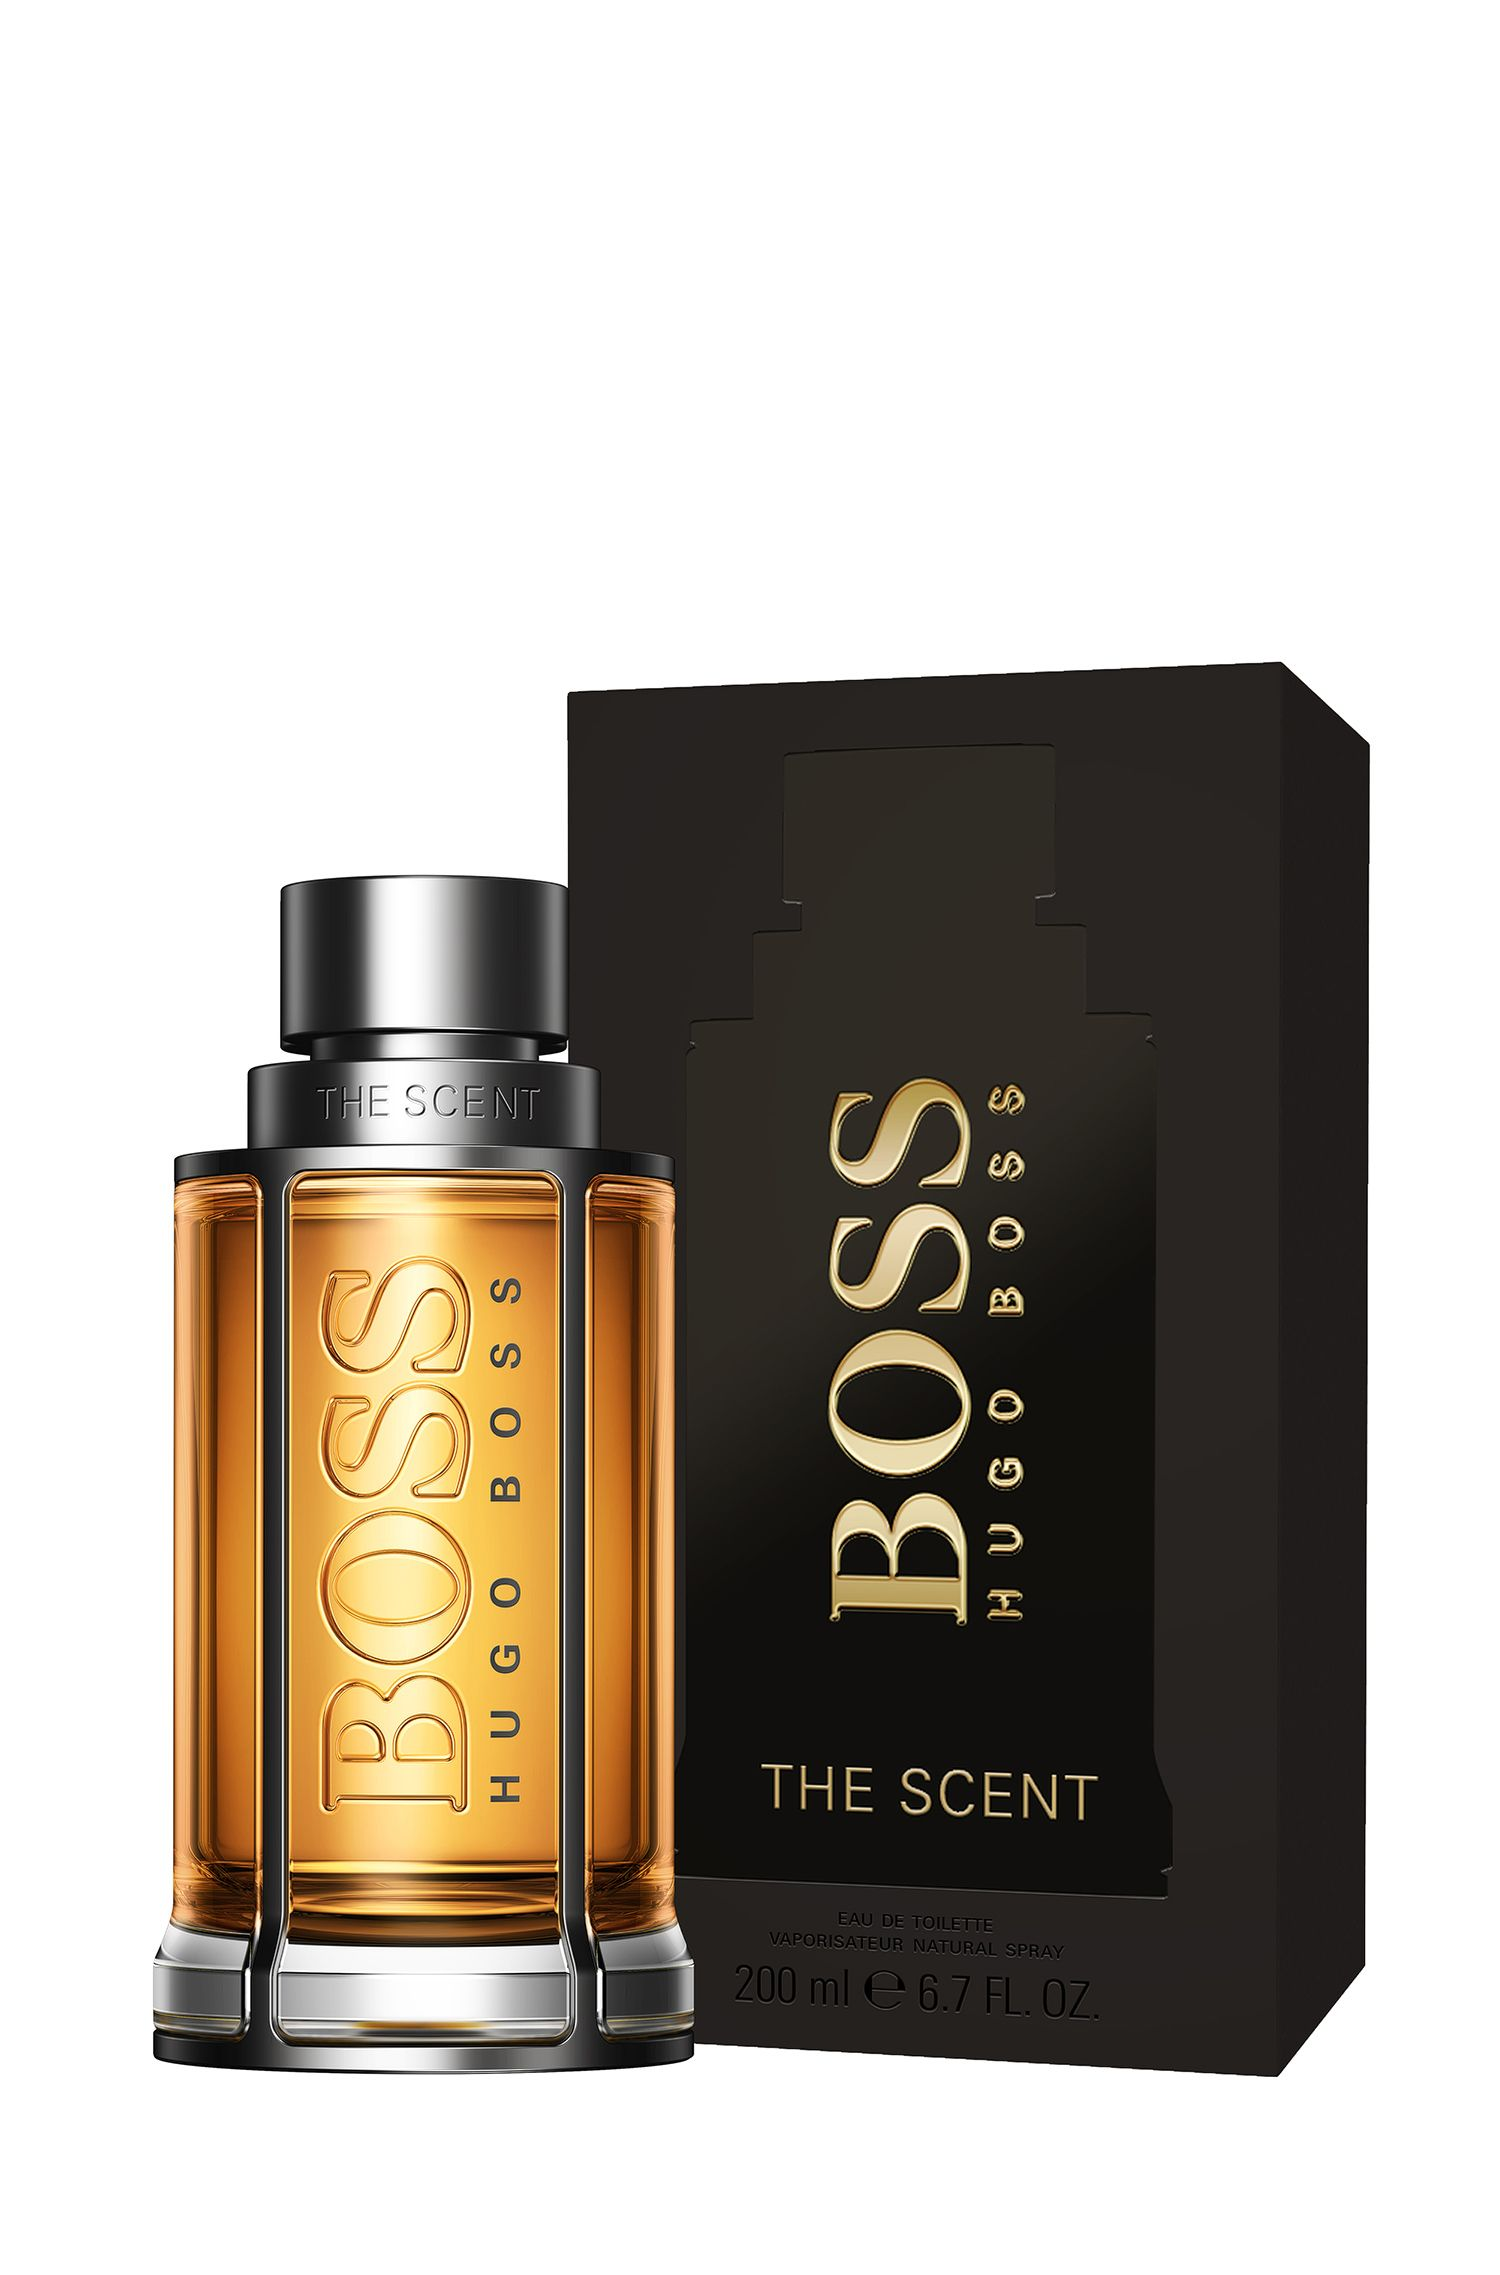 BOSS The Scent eau de toilette 200ml